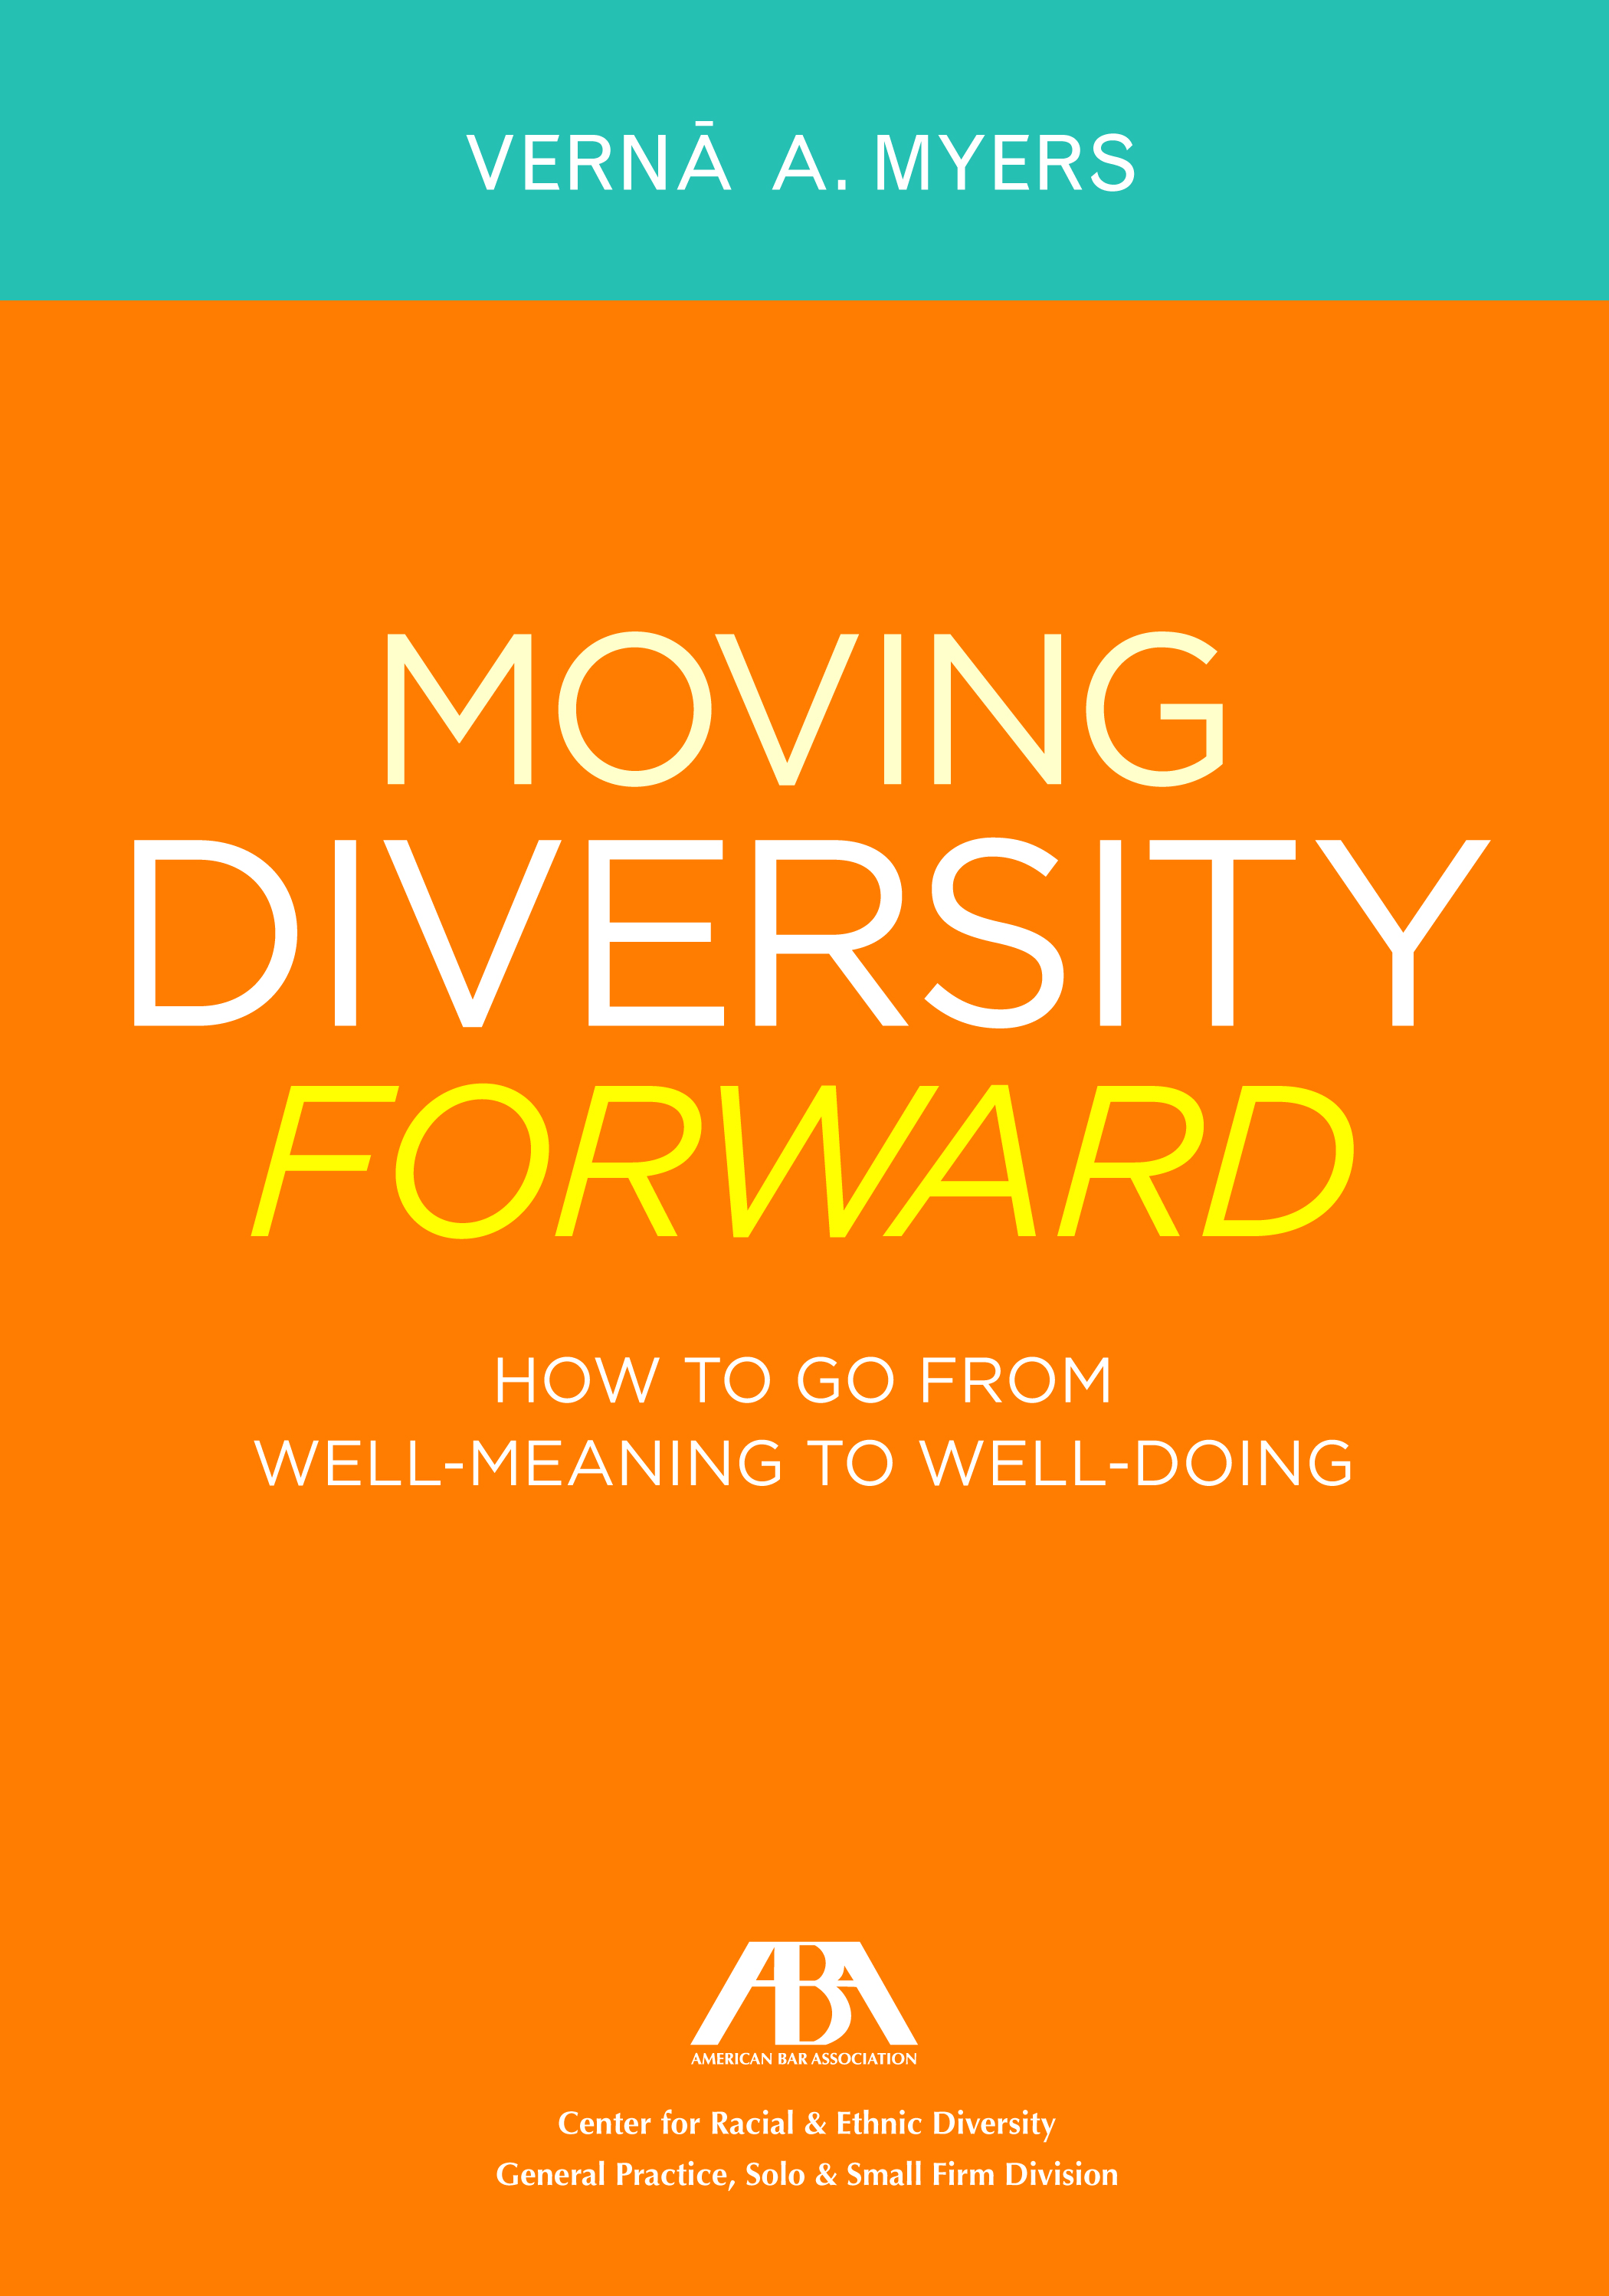 Moving Diversity Forward: How to Go From Well-Meaning to Well Doing